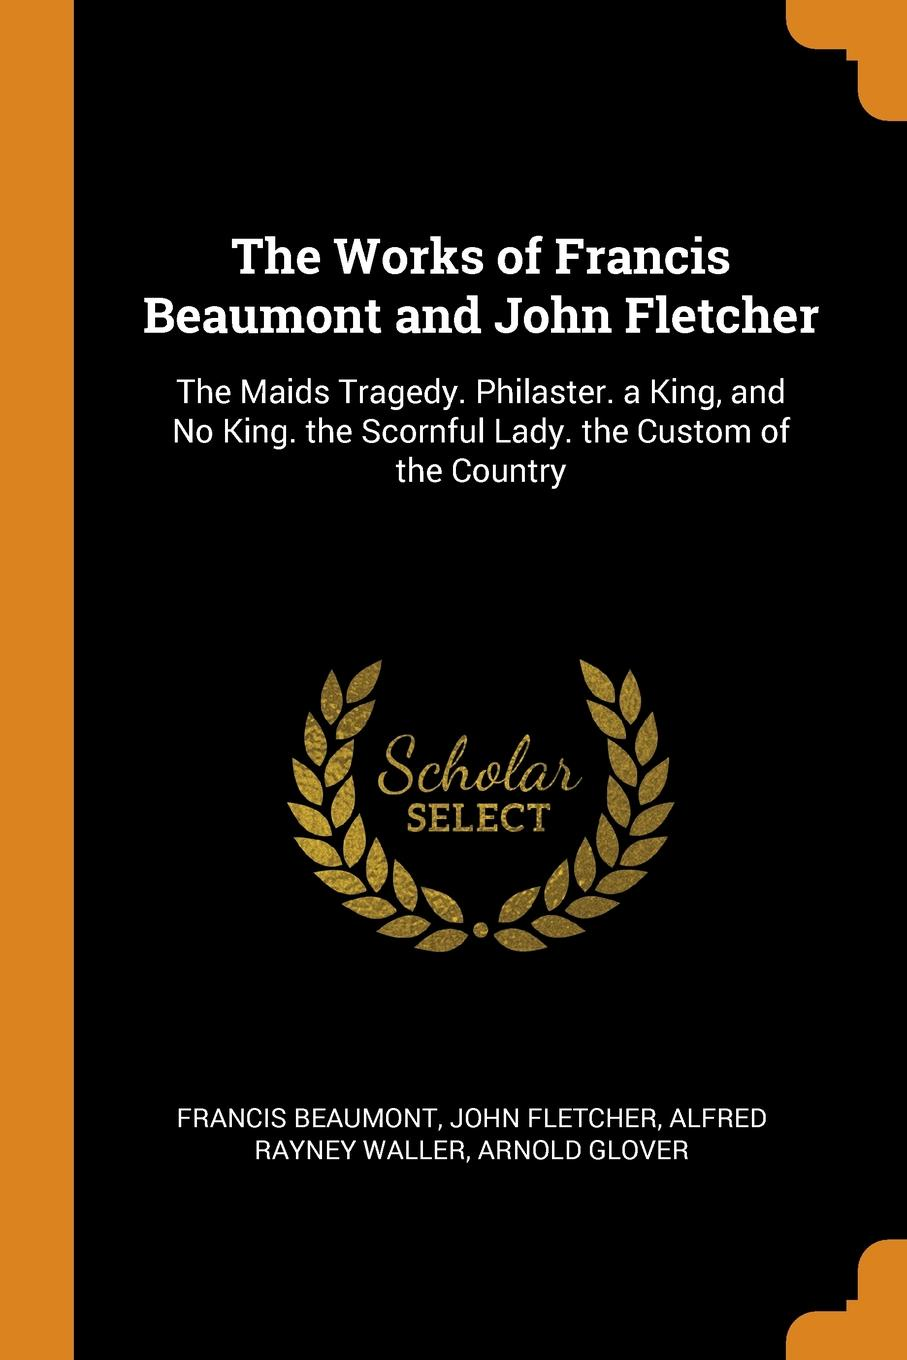 Francis Beaumont, John Fletcher, Alfred Rayney Waller The Works of Francis Beaumont and John Fletcher. The Maids Tragedy. Philaster. a King, and No King. the Scornful Lady. the Custom of the Country